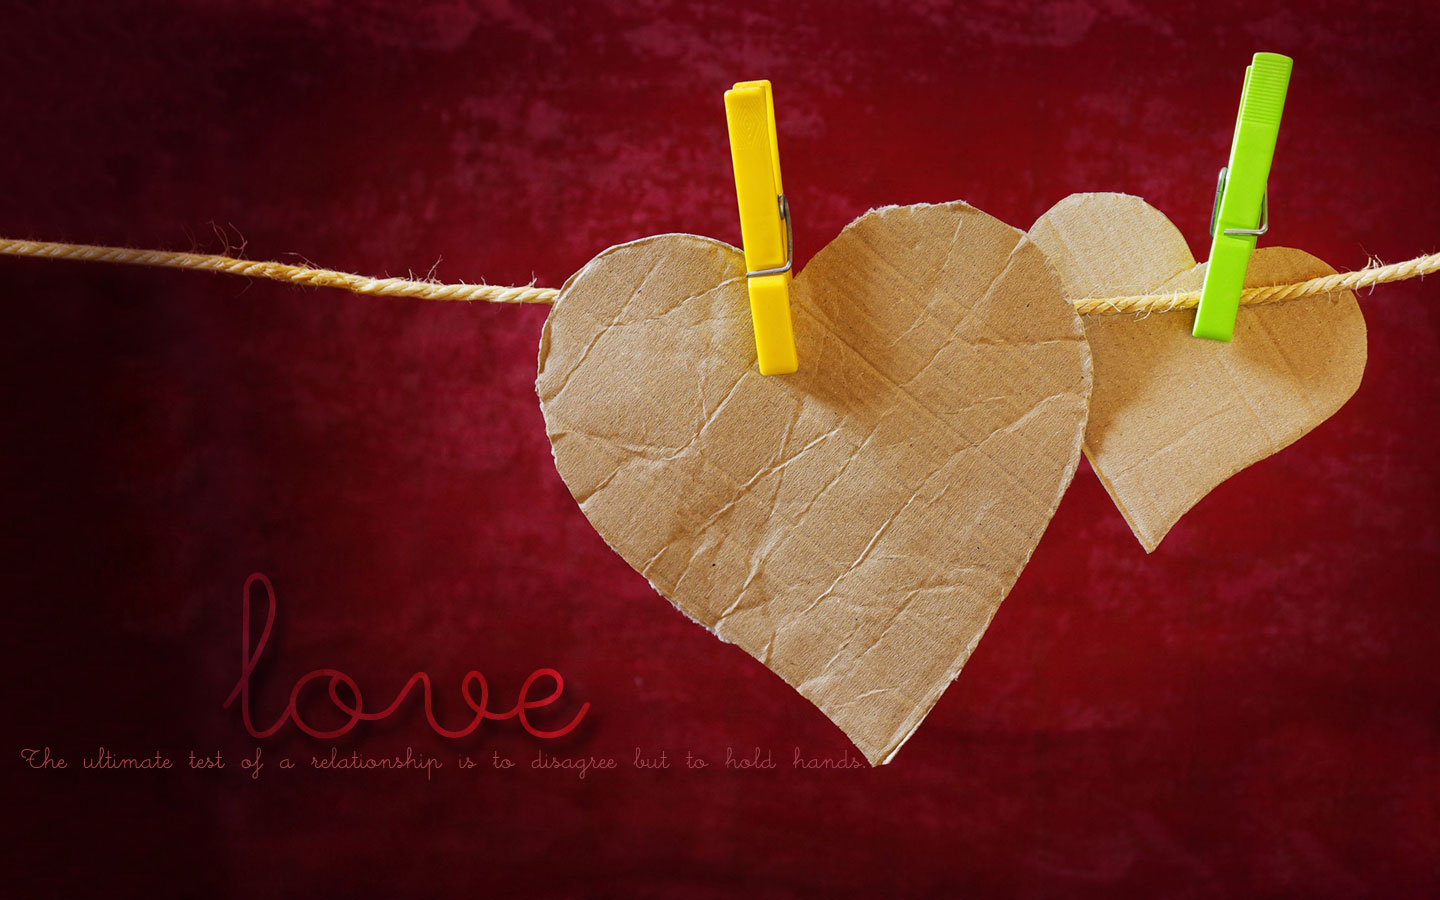 Free Download Love Hd Wallpapers I Love You Wallpapers Love